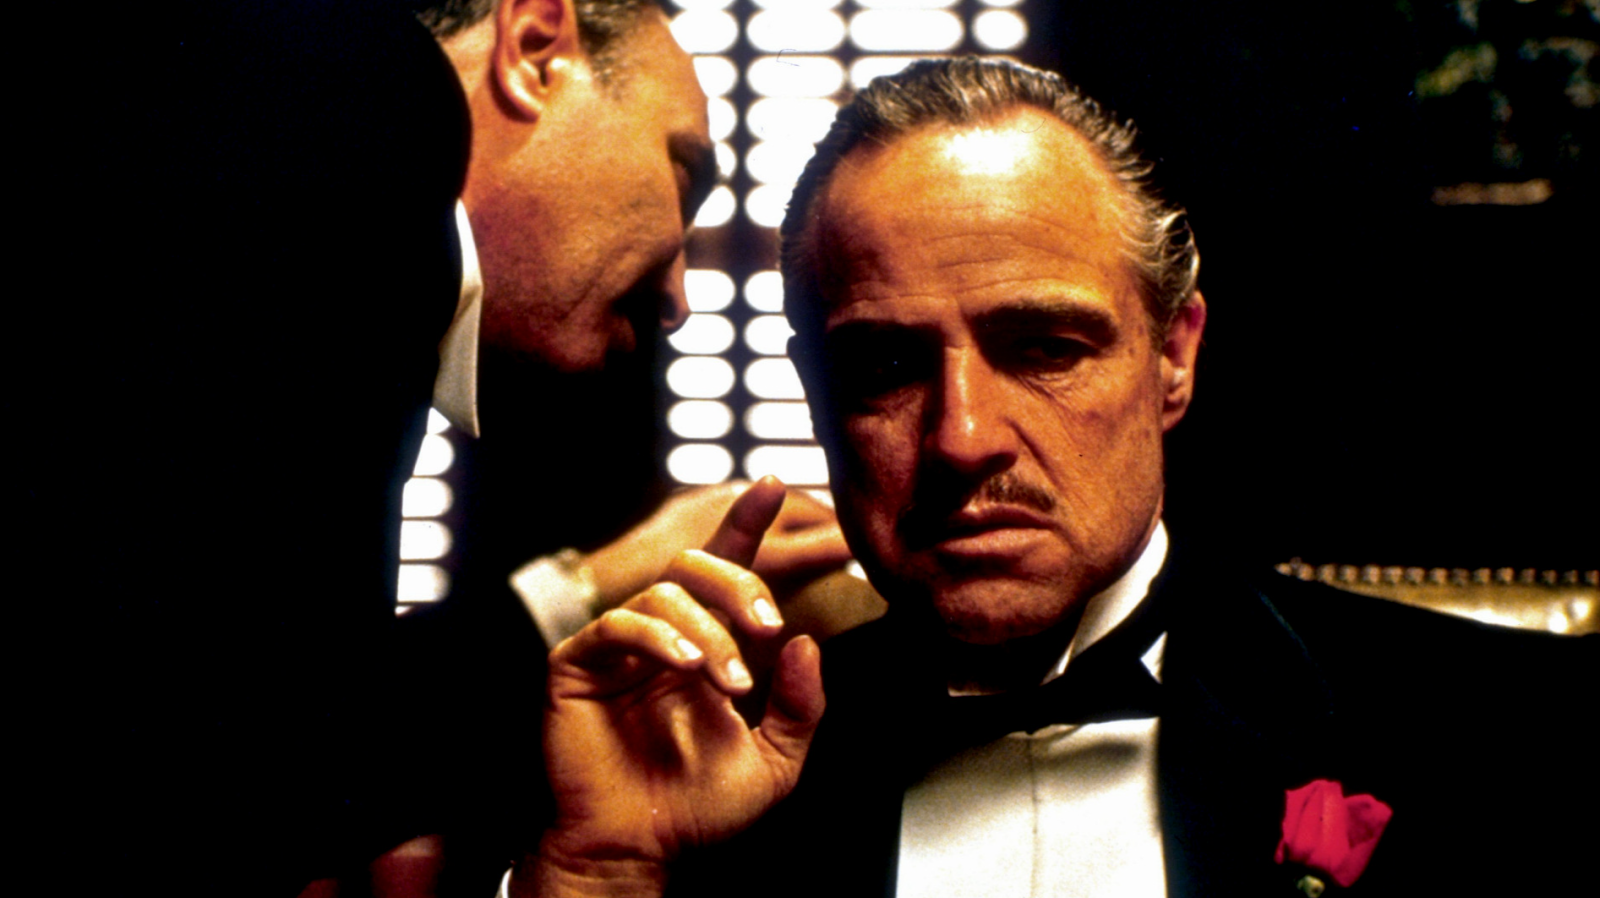 the-godfather-marlon-brando-19721.png